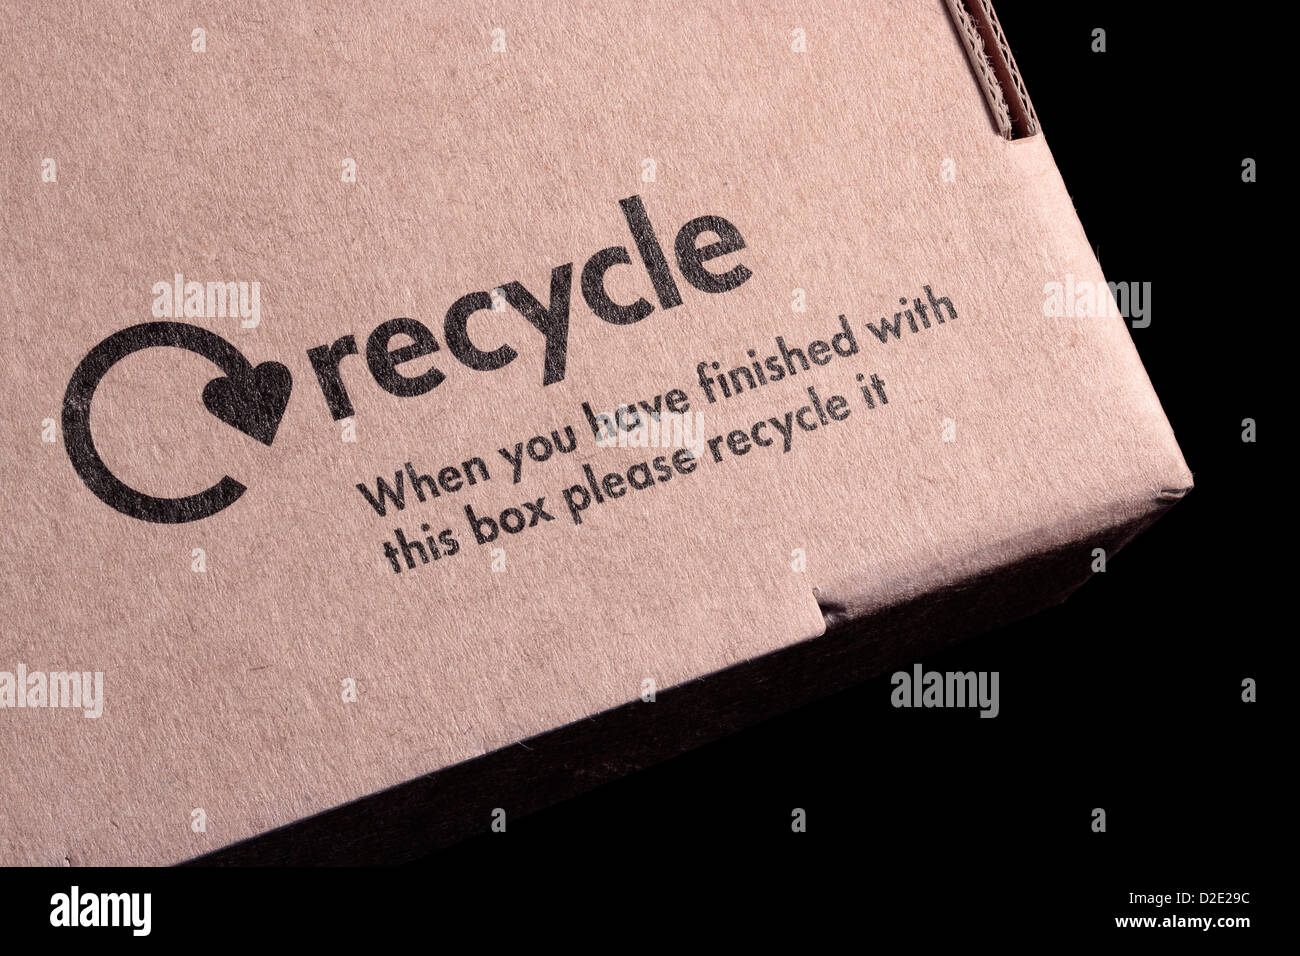 Cardboard box on black background stock photos cardboard box on cardboard box recycling symbol and message when you have finished with this box please recycle it buycottarizona Gallery